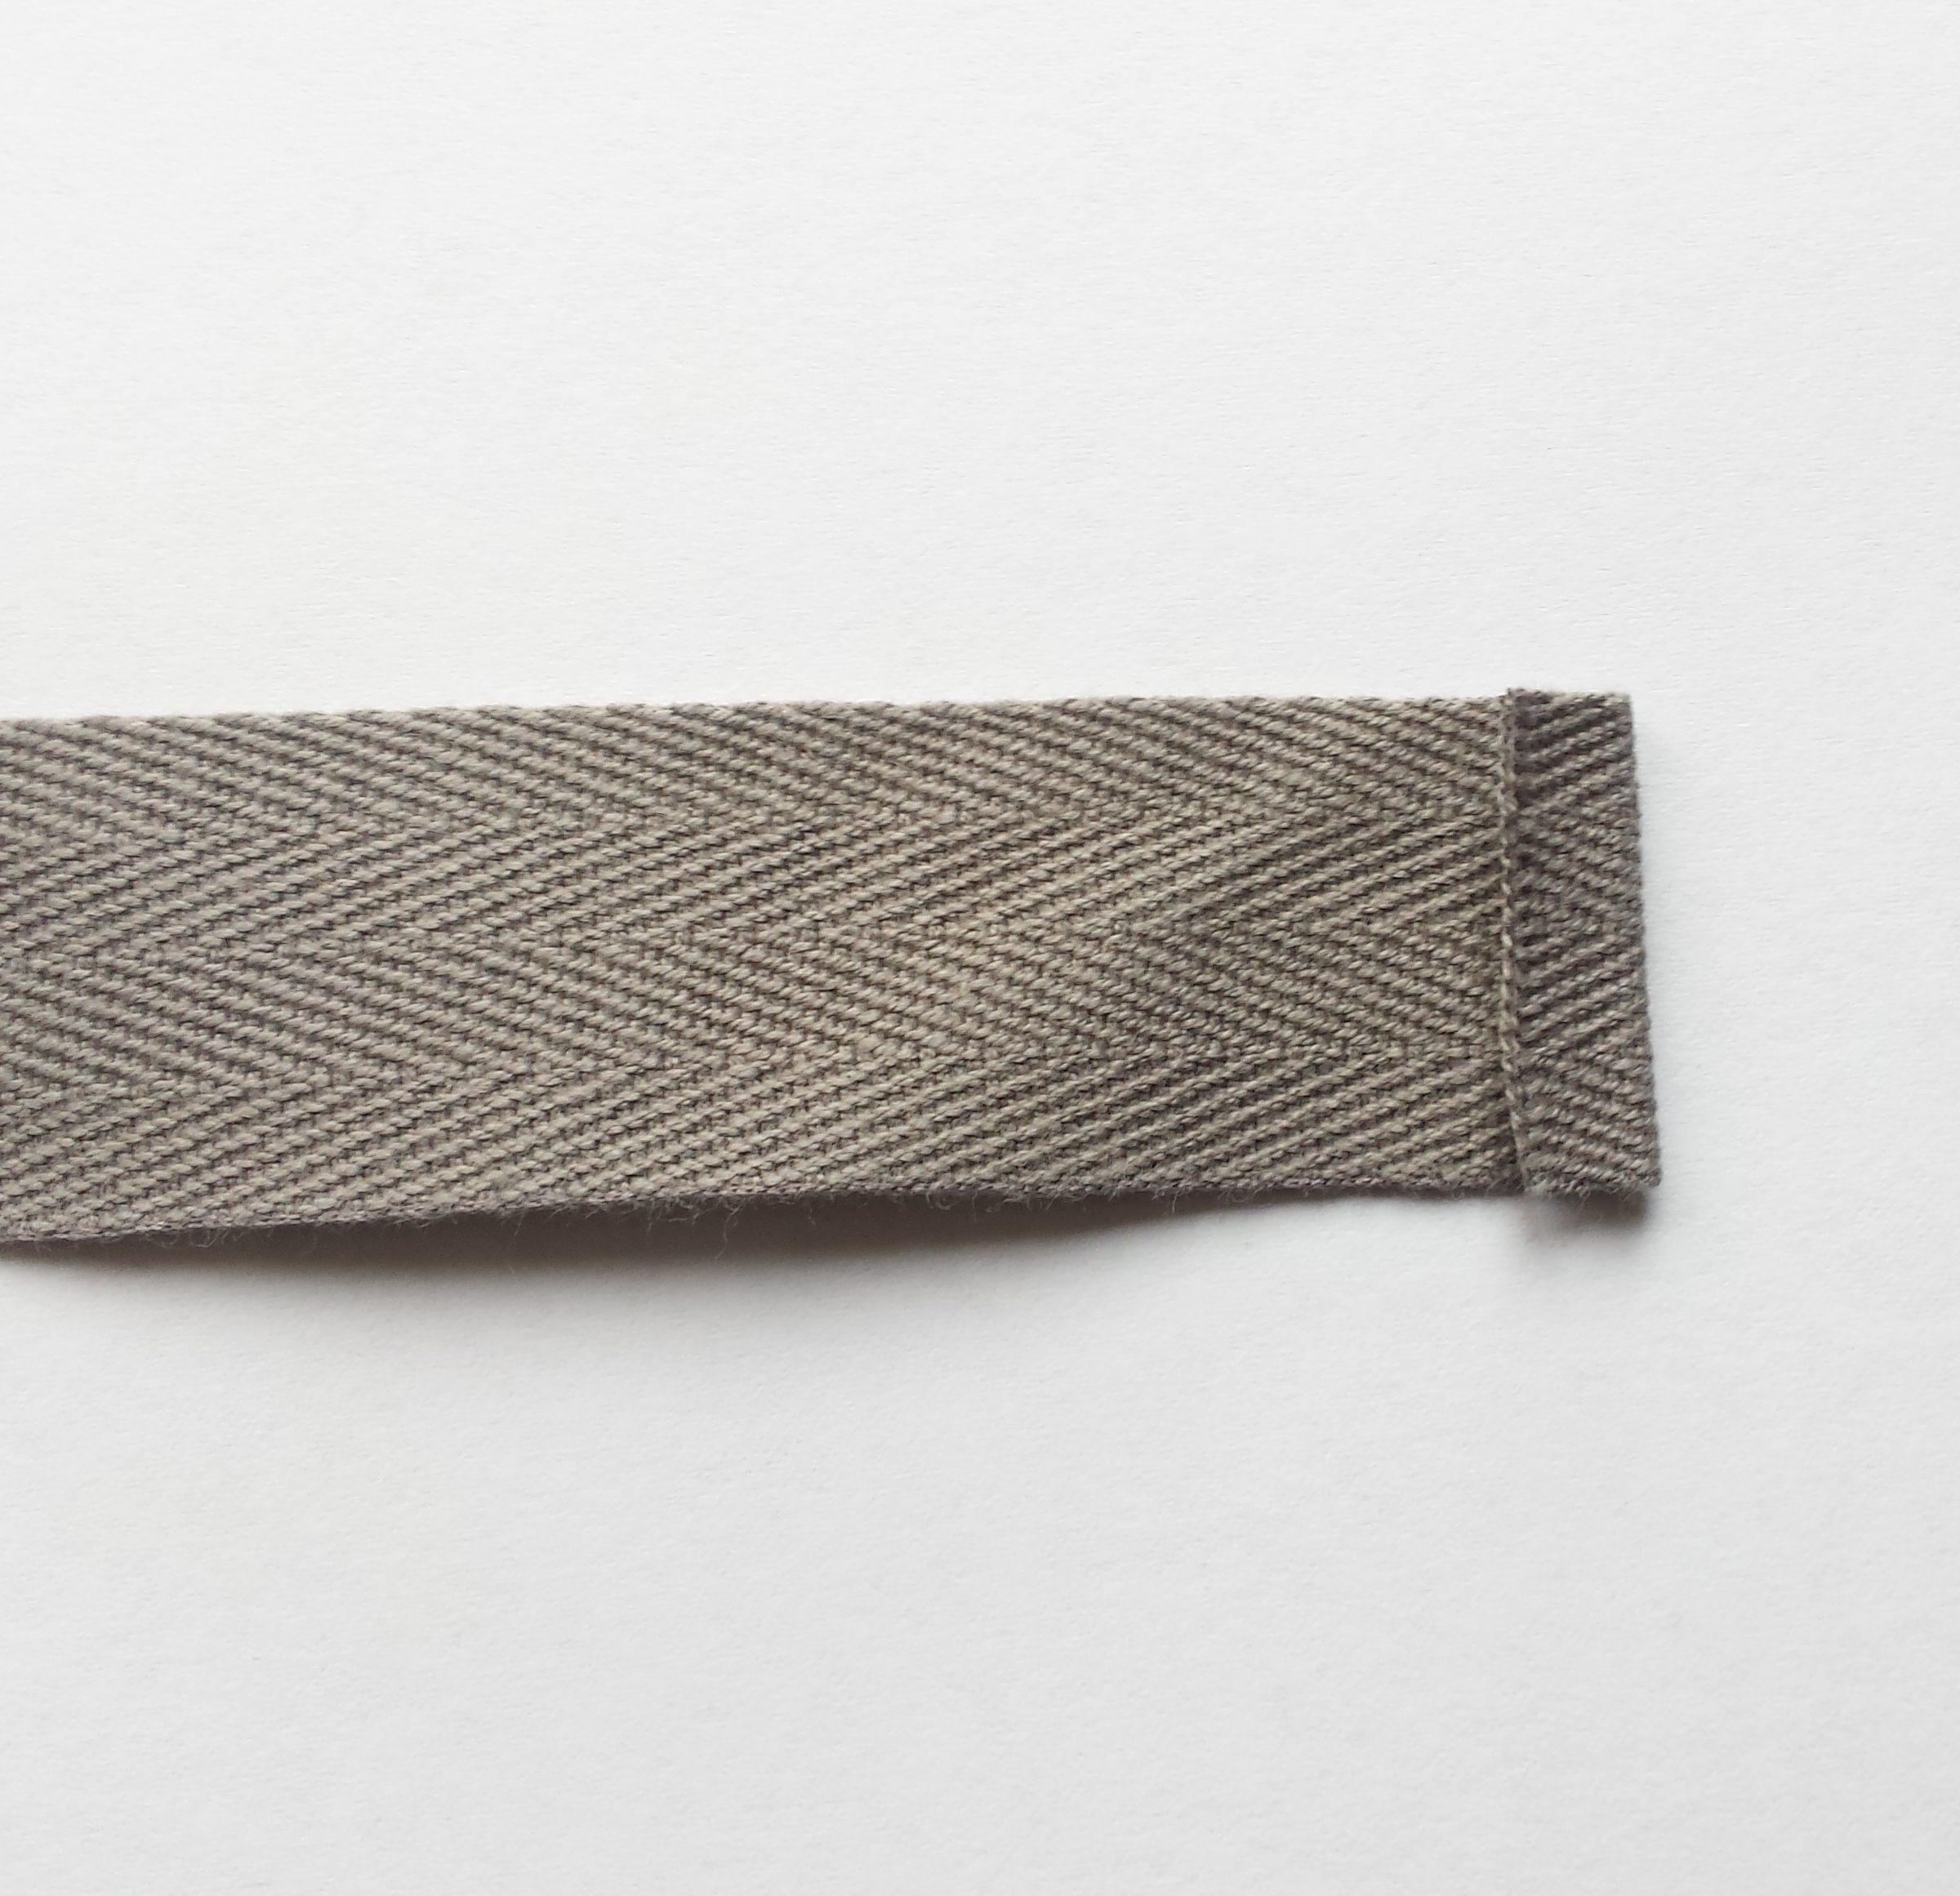 Picture of Making the Straps